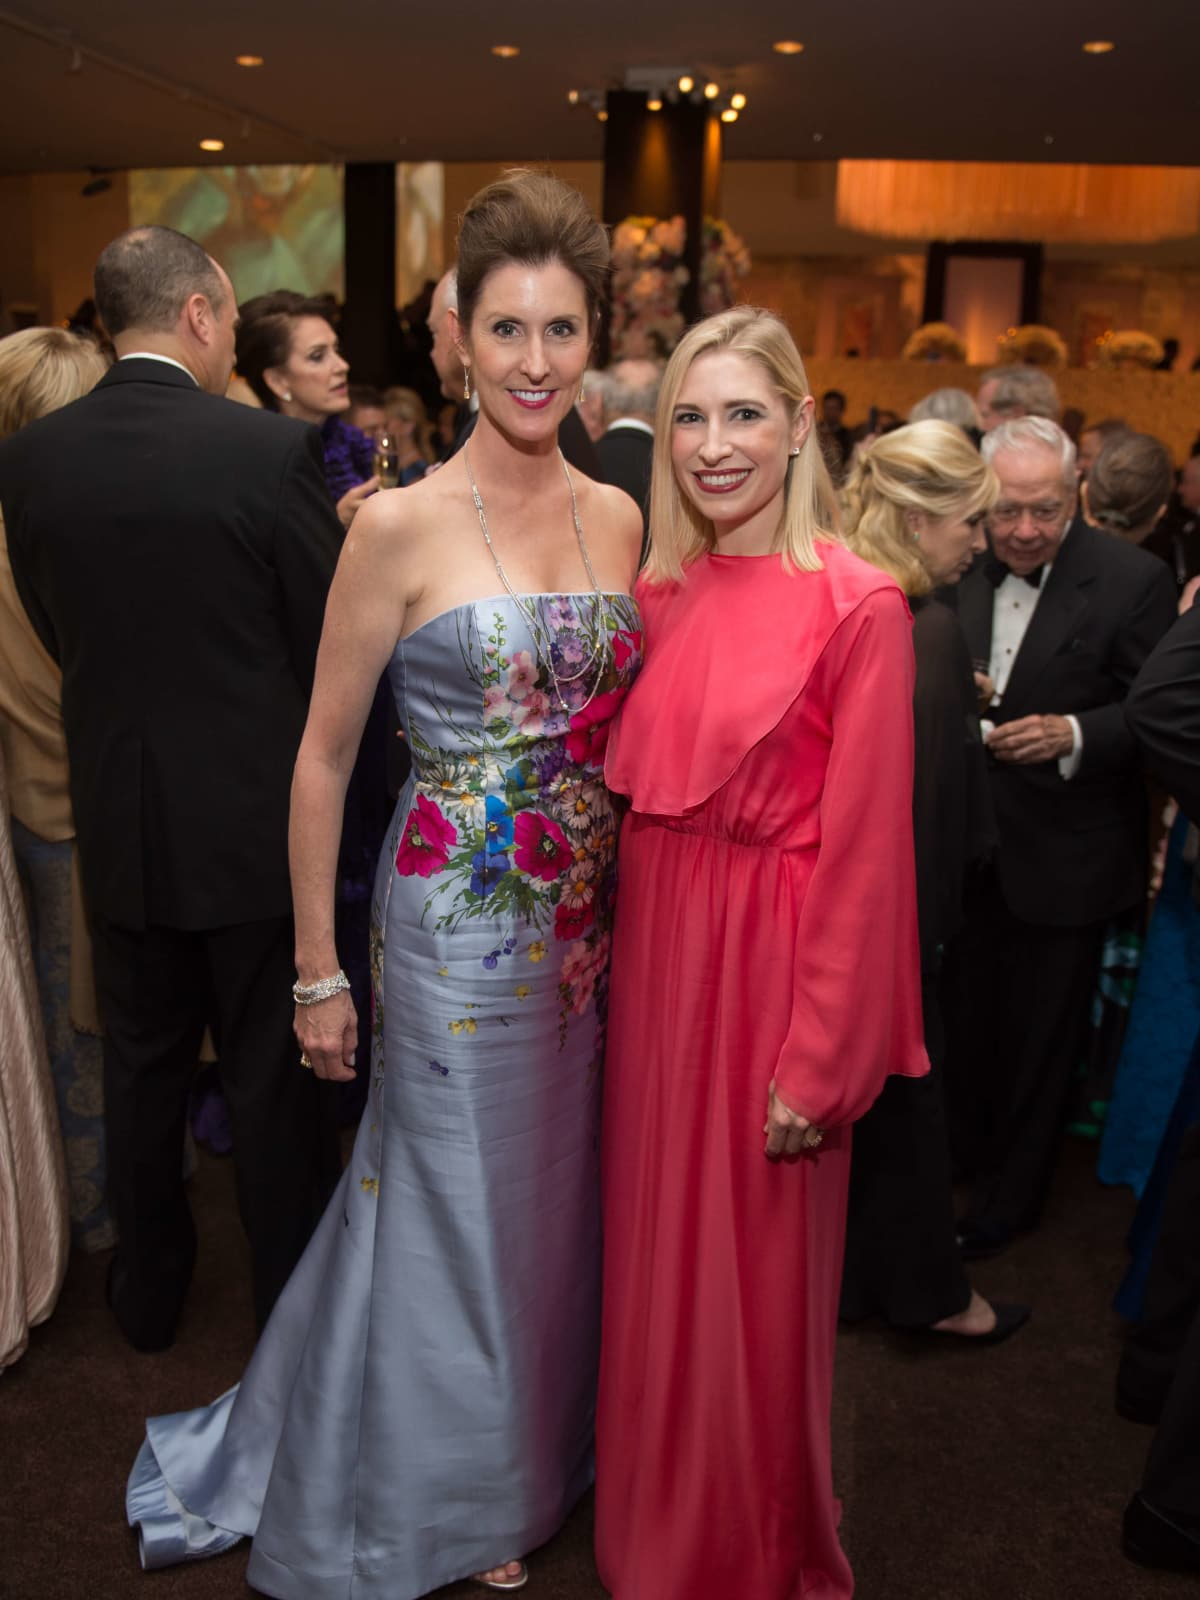 Phoebe Tudor and Isabel David at Museum of Fine Arts Grand Gala Ball